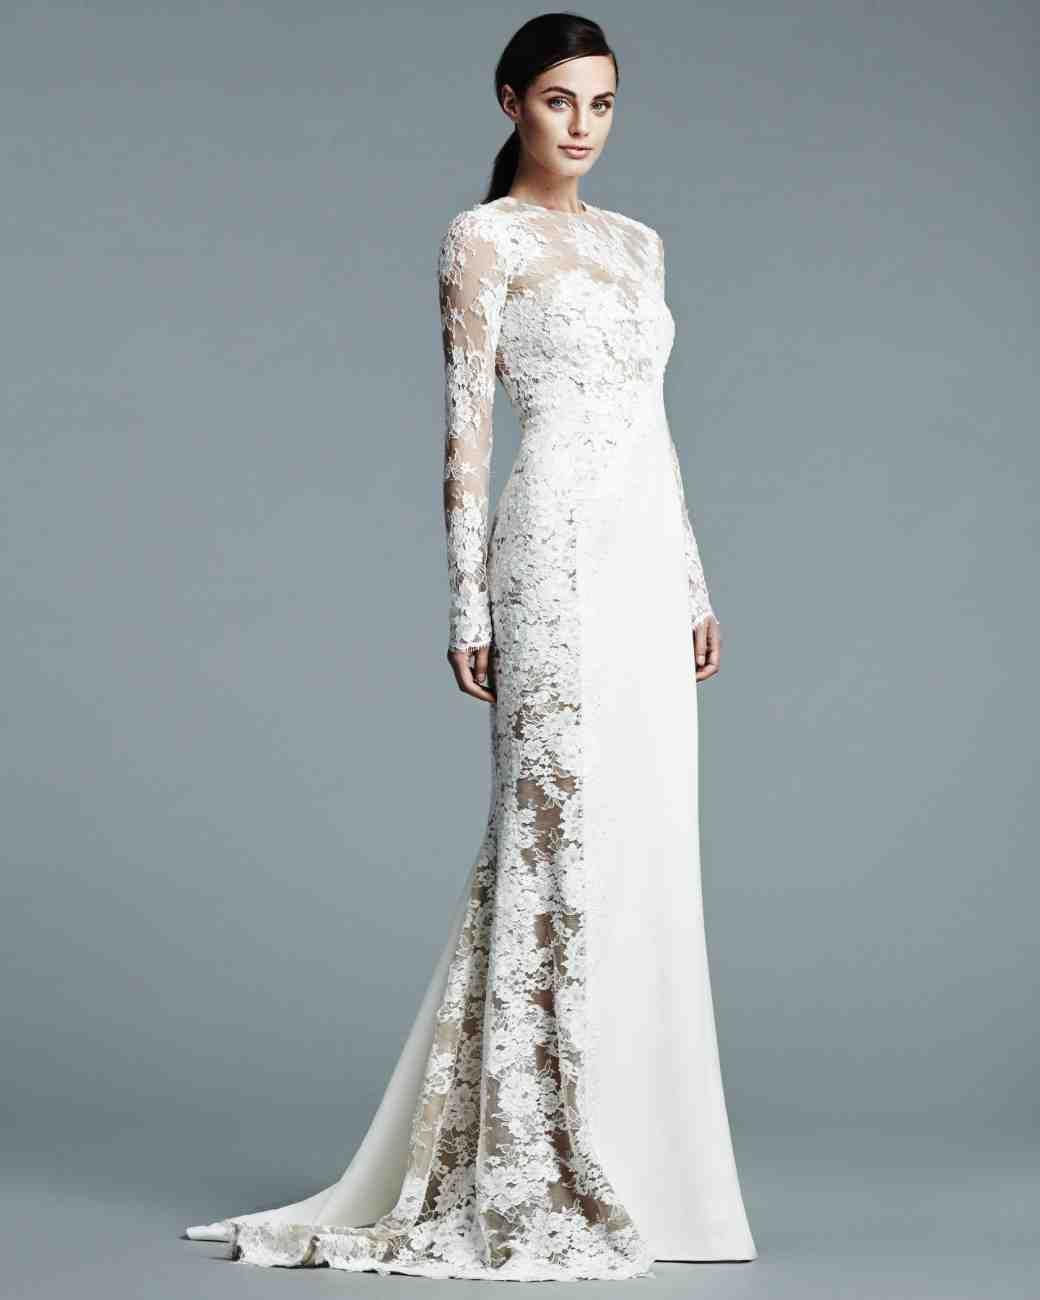 The 9 Best Wedding Dress Trends from Bridal Fashion Week | Martha ...